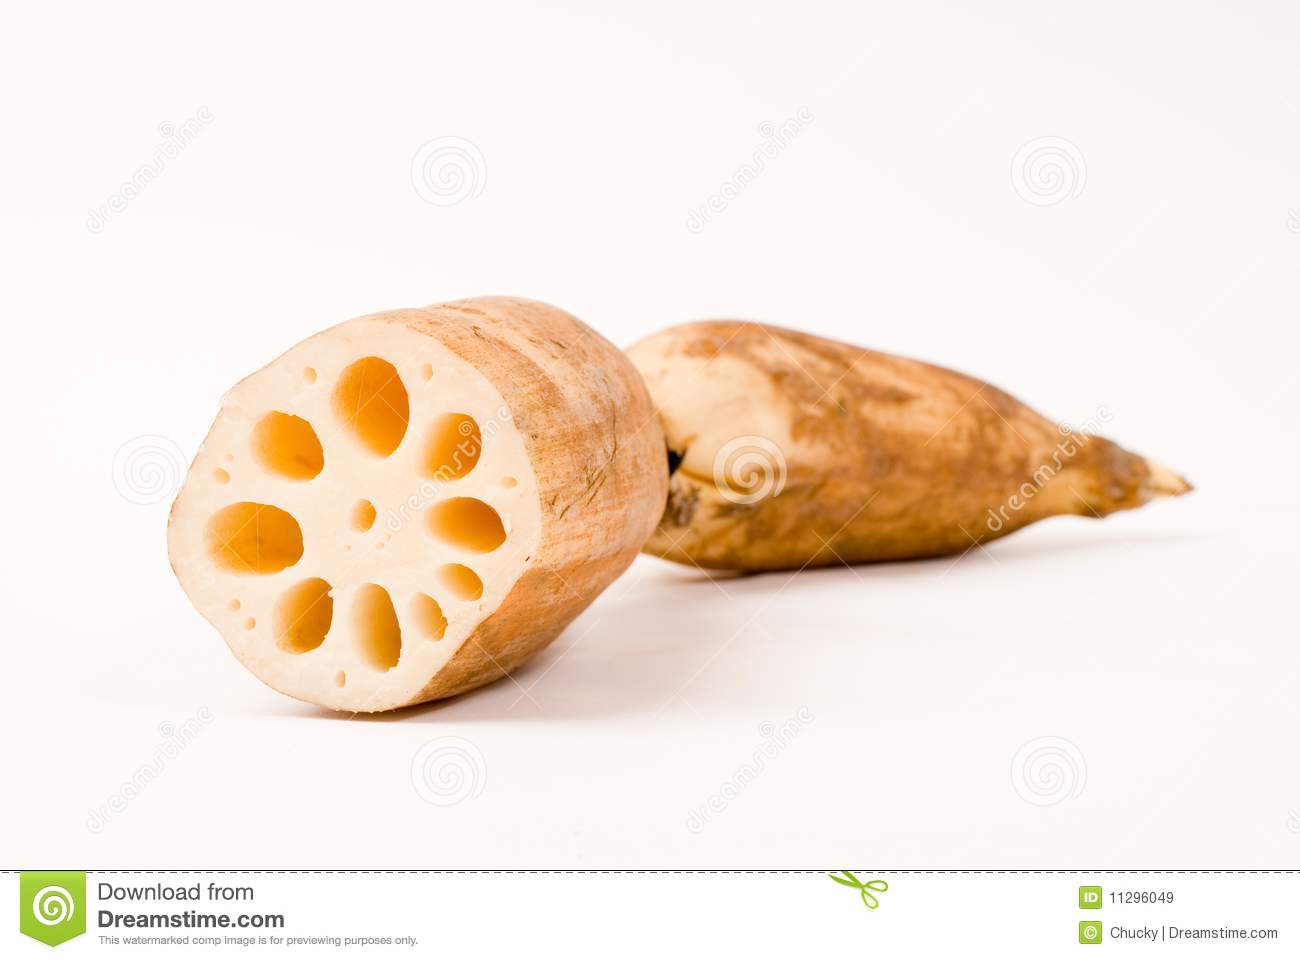 Plant roots the good bad and not so ugly carb find out why fat lotus root the root may be ugly but its flower the water lily is a beautiful art form the flower is the national flower of india and vietnam izmirmasajfo Image collections